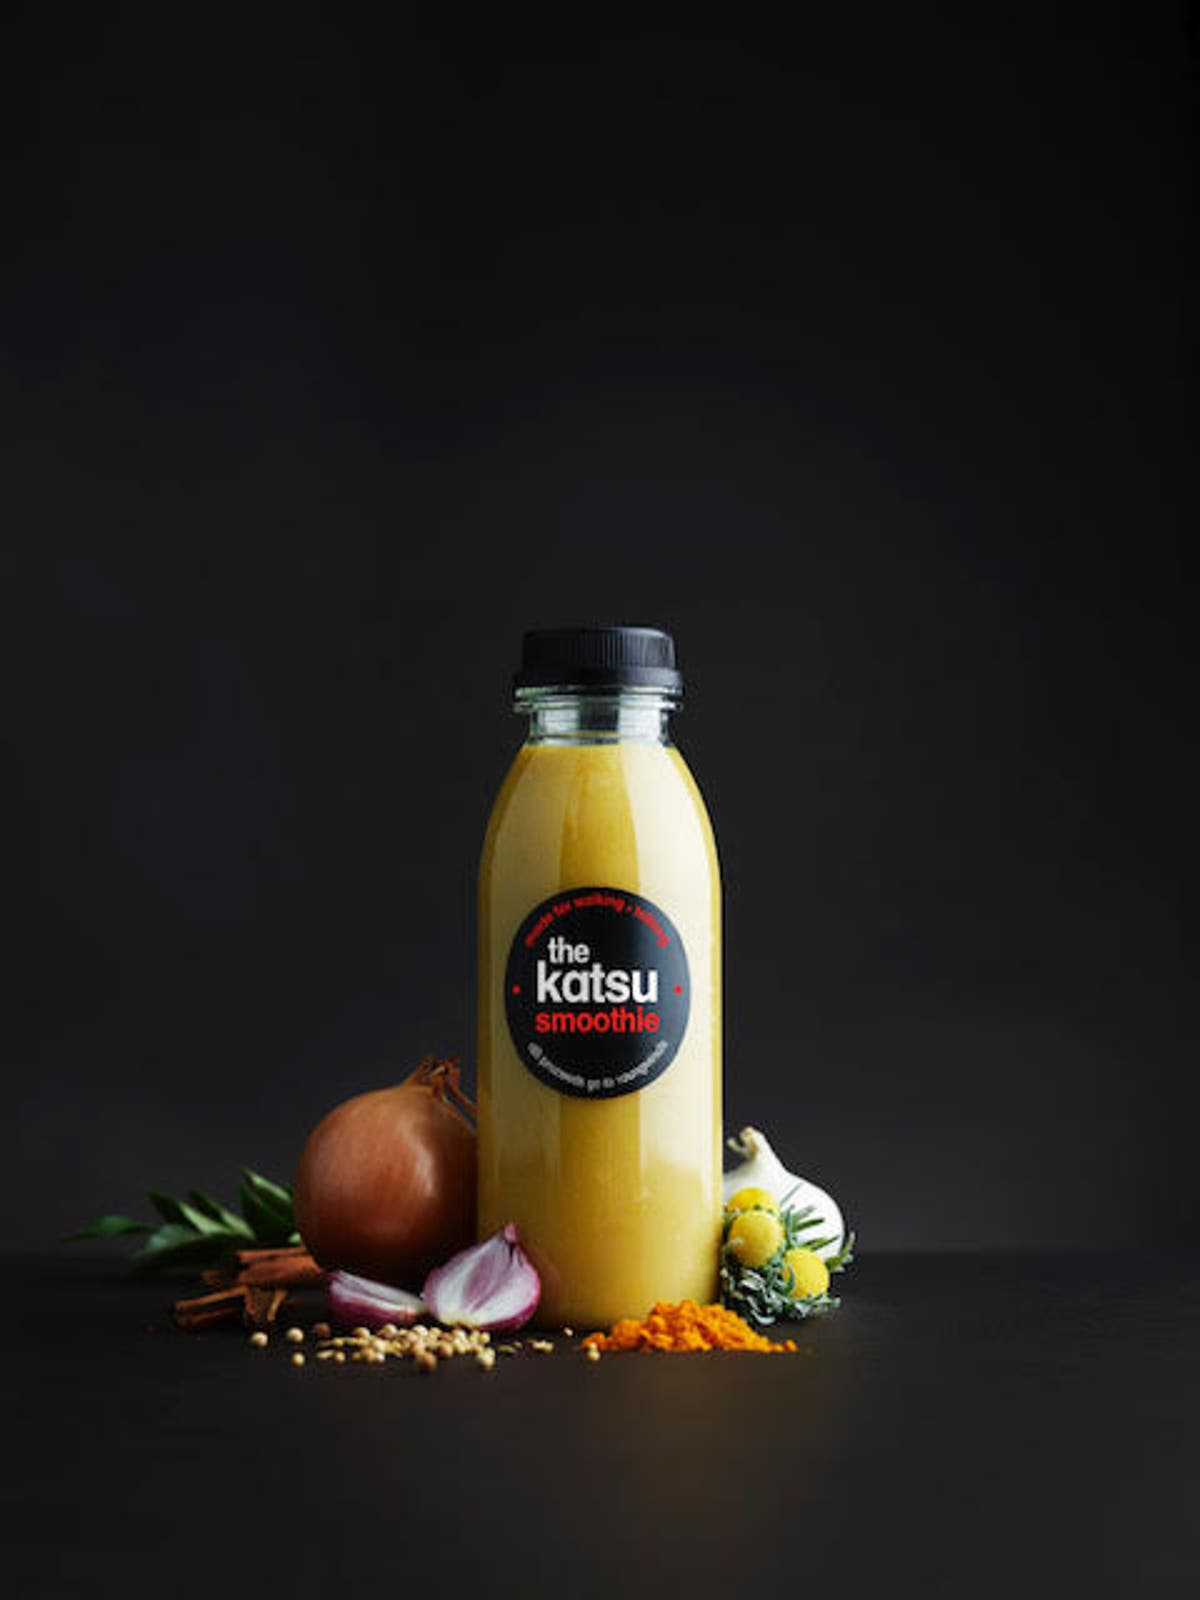 Would you try it? Wagamama launches katsu flavour smoothie